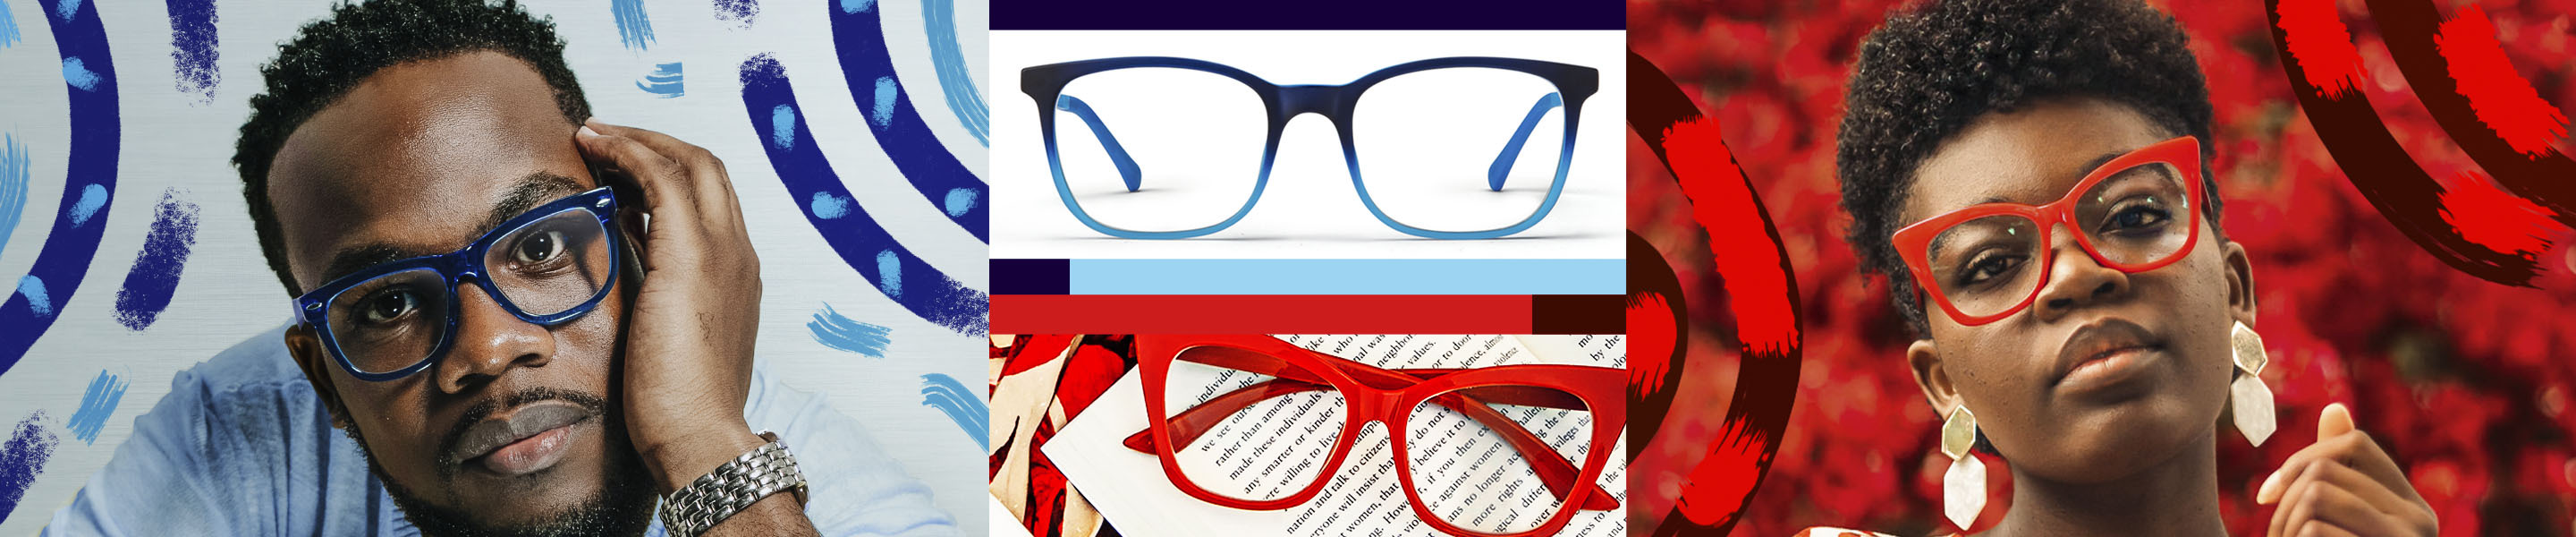 Four images, two of glasses and two of people in glasses. Image of a man wearing Zenni Olvera square glasses #449416 in blue, against a light blue background. Image of a woman wearing Zenni cat-eye glasses #2027018 in red, against a red background. Image of Zenni square glasses #2016216 in blue on a white background. Image of Zenni cat-eye glasses #2027018 in red resting on a book.